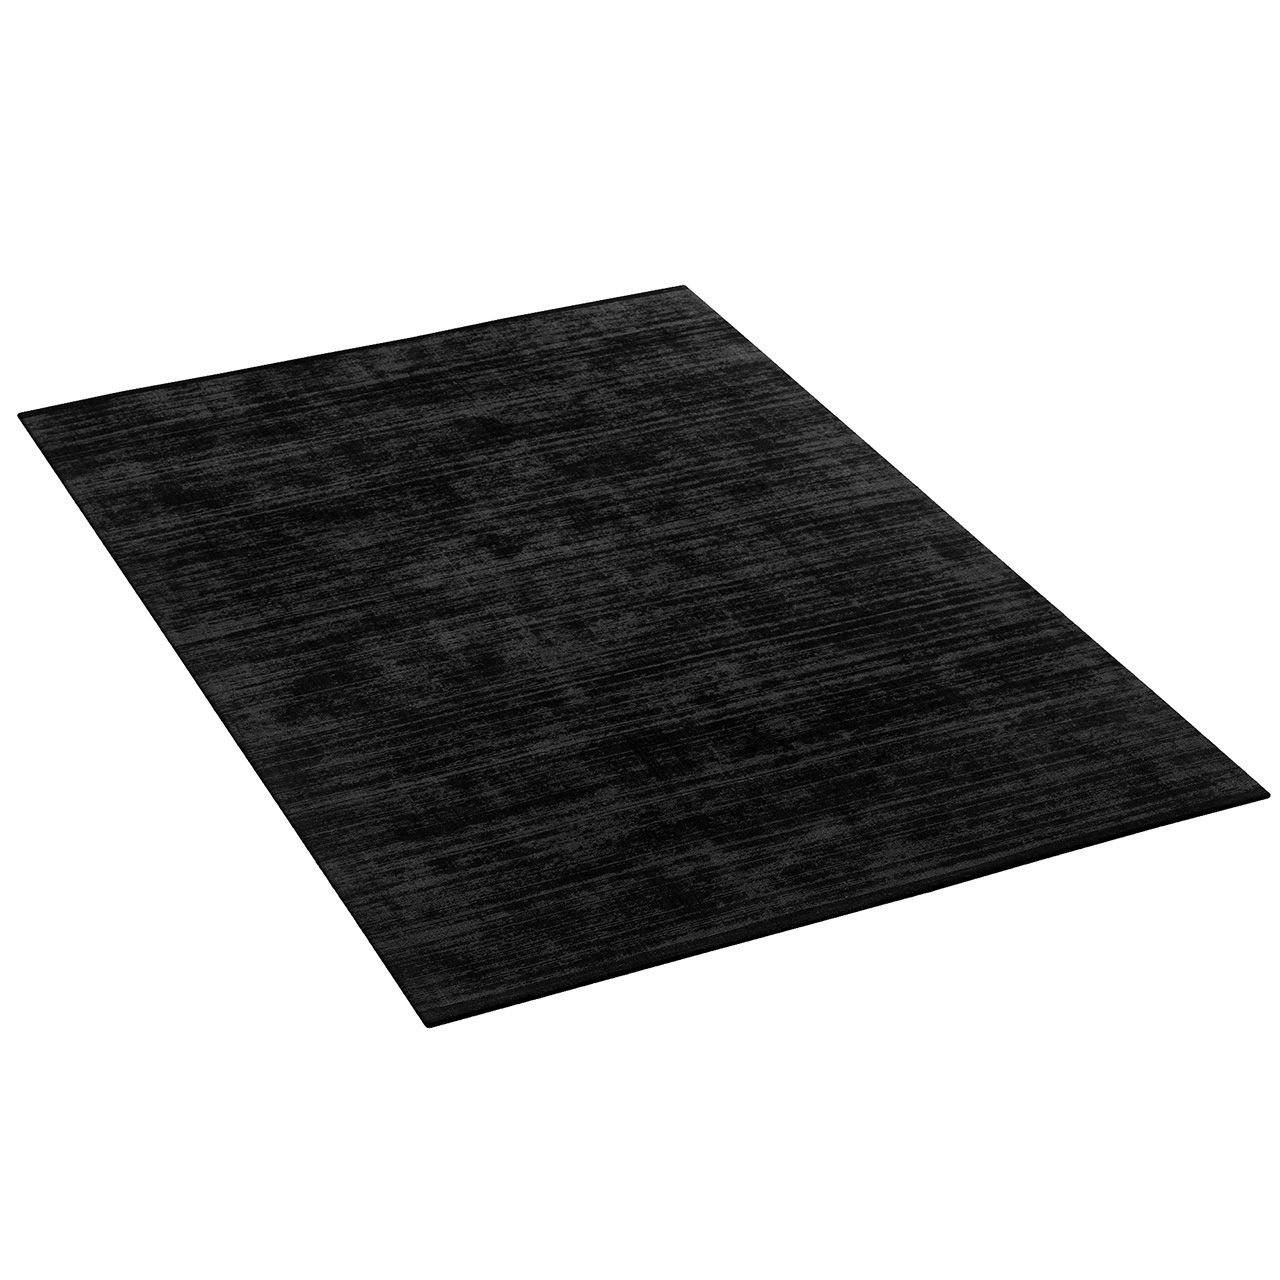 Loke Rug by Fabula Living